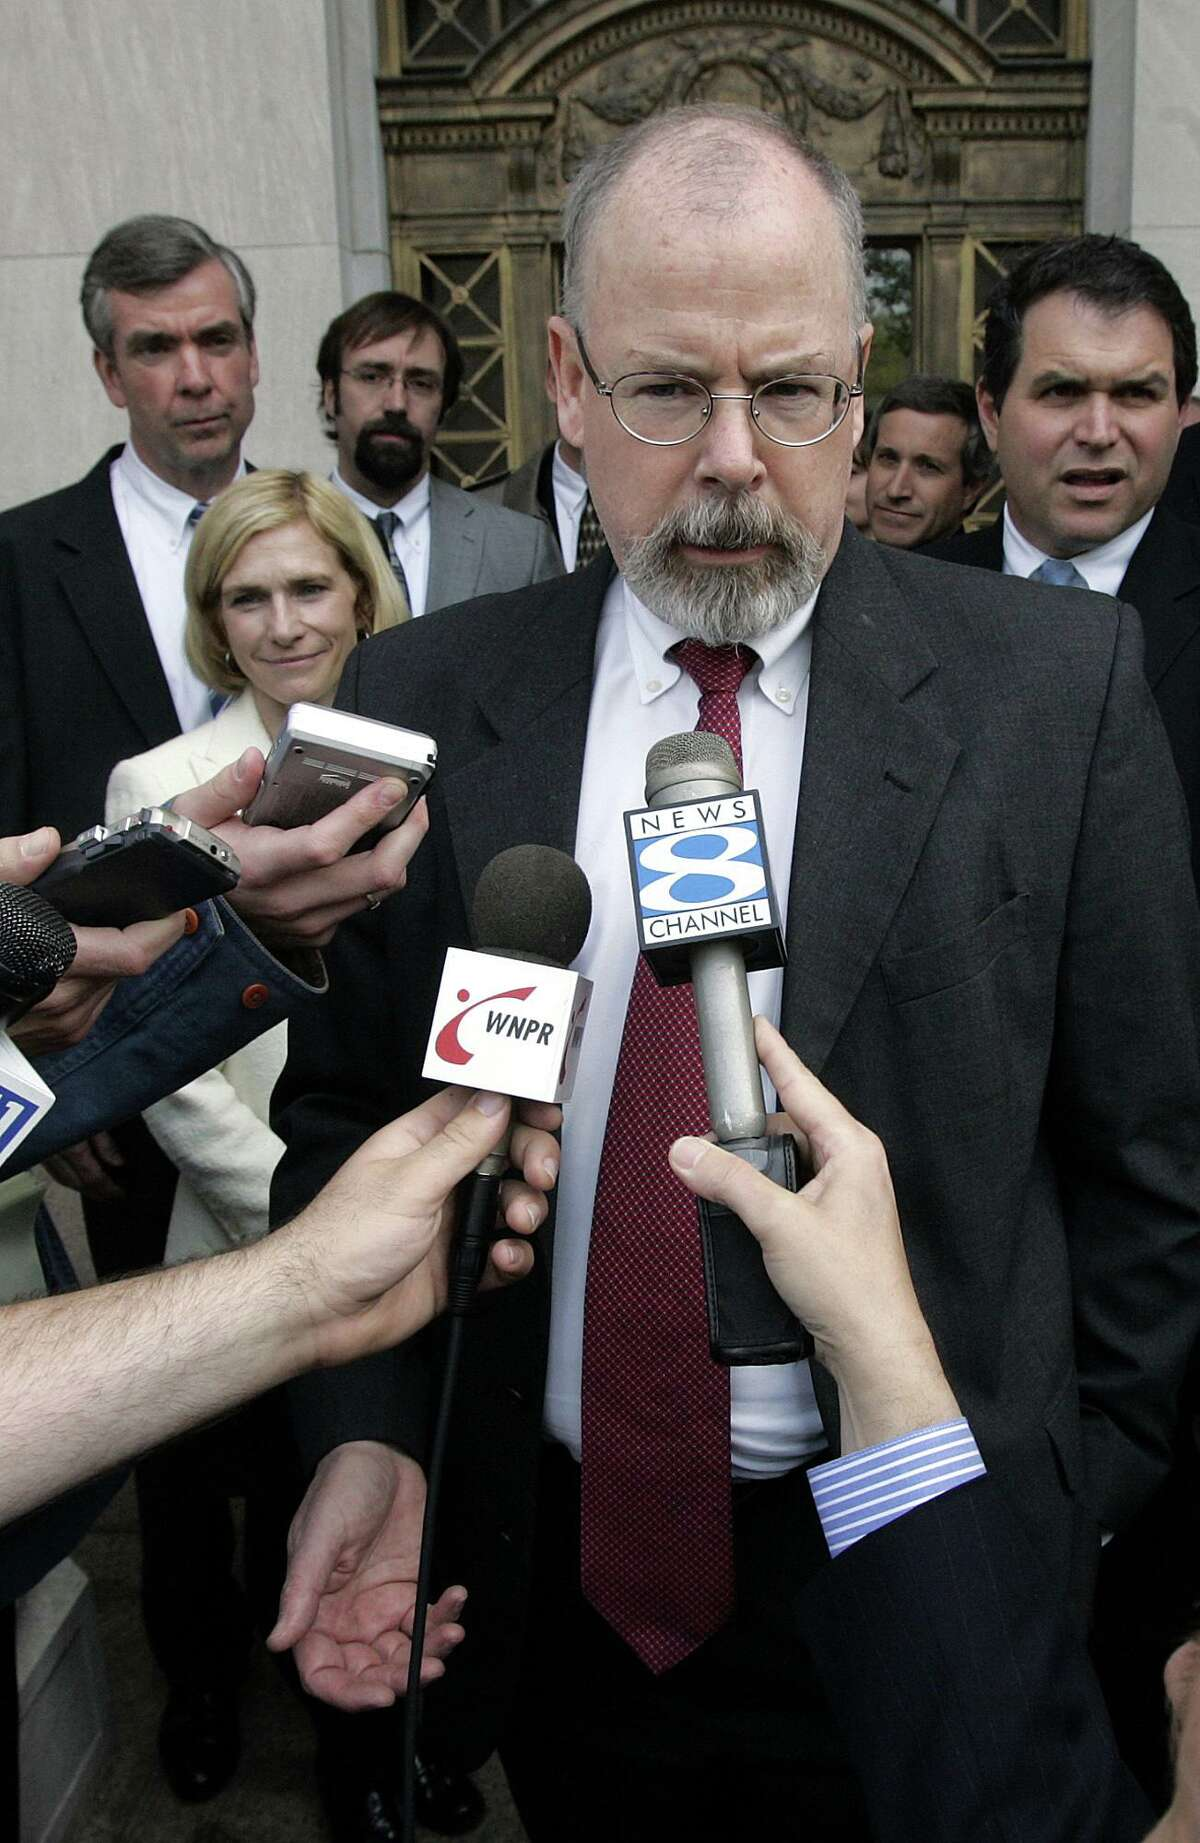 U.S. Attorney for Connecticut John Durham has been tapped by the Trump administration to investigate Ukraine's potential role in interfering in the 2016 election.